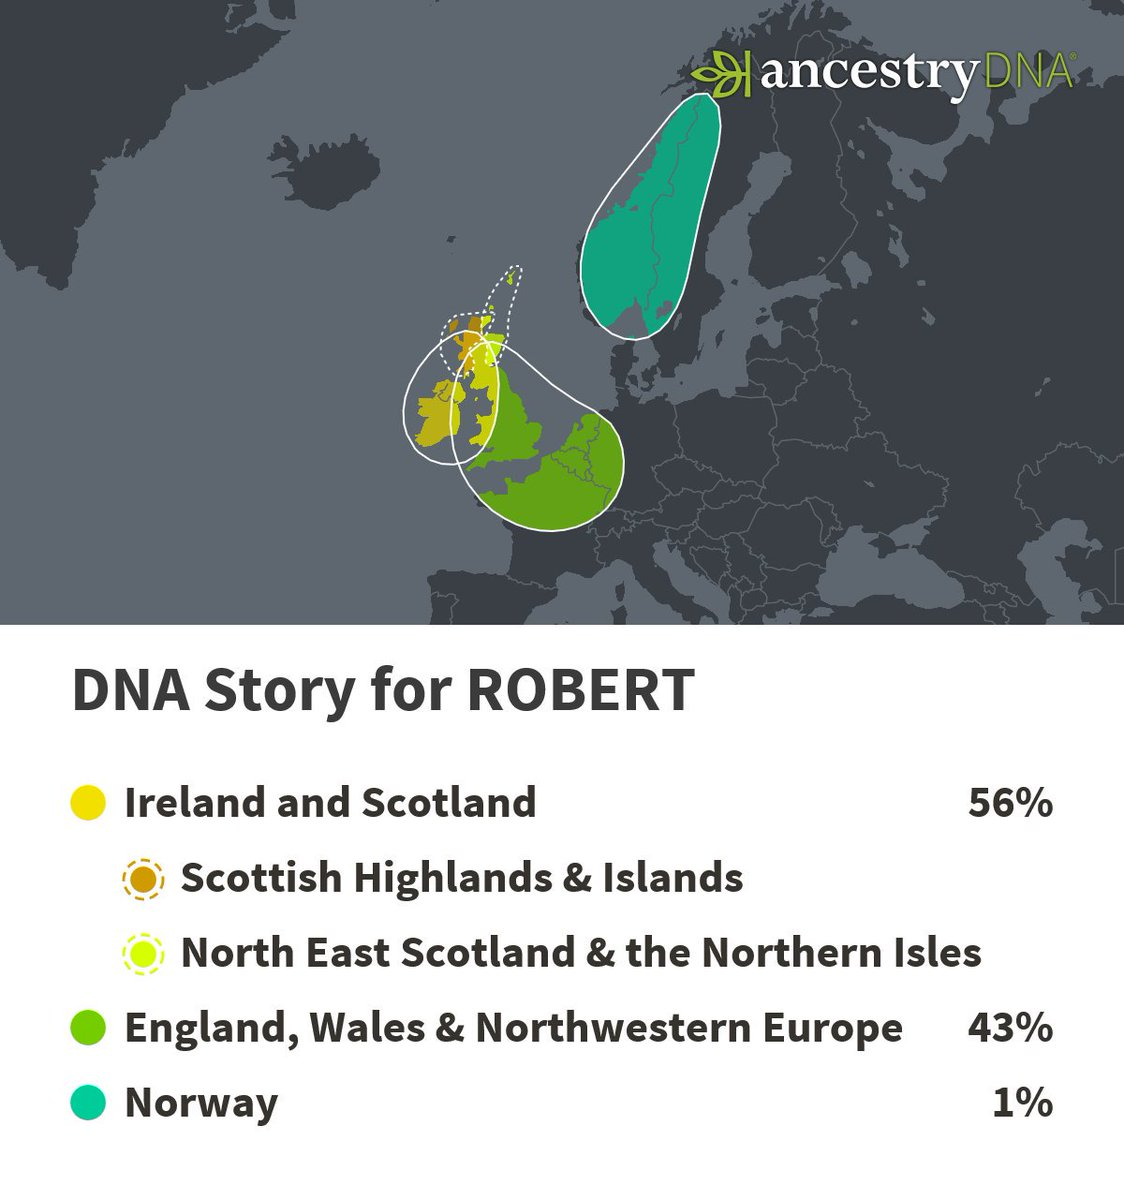 Check out my #AncestryDNA results! Find your own story at http://AncestryDNA.com